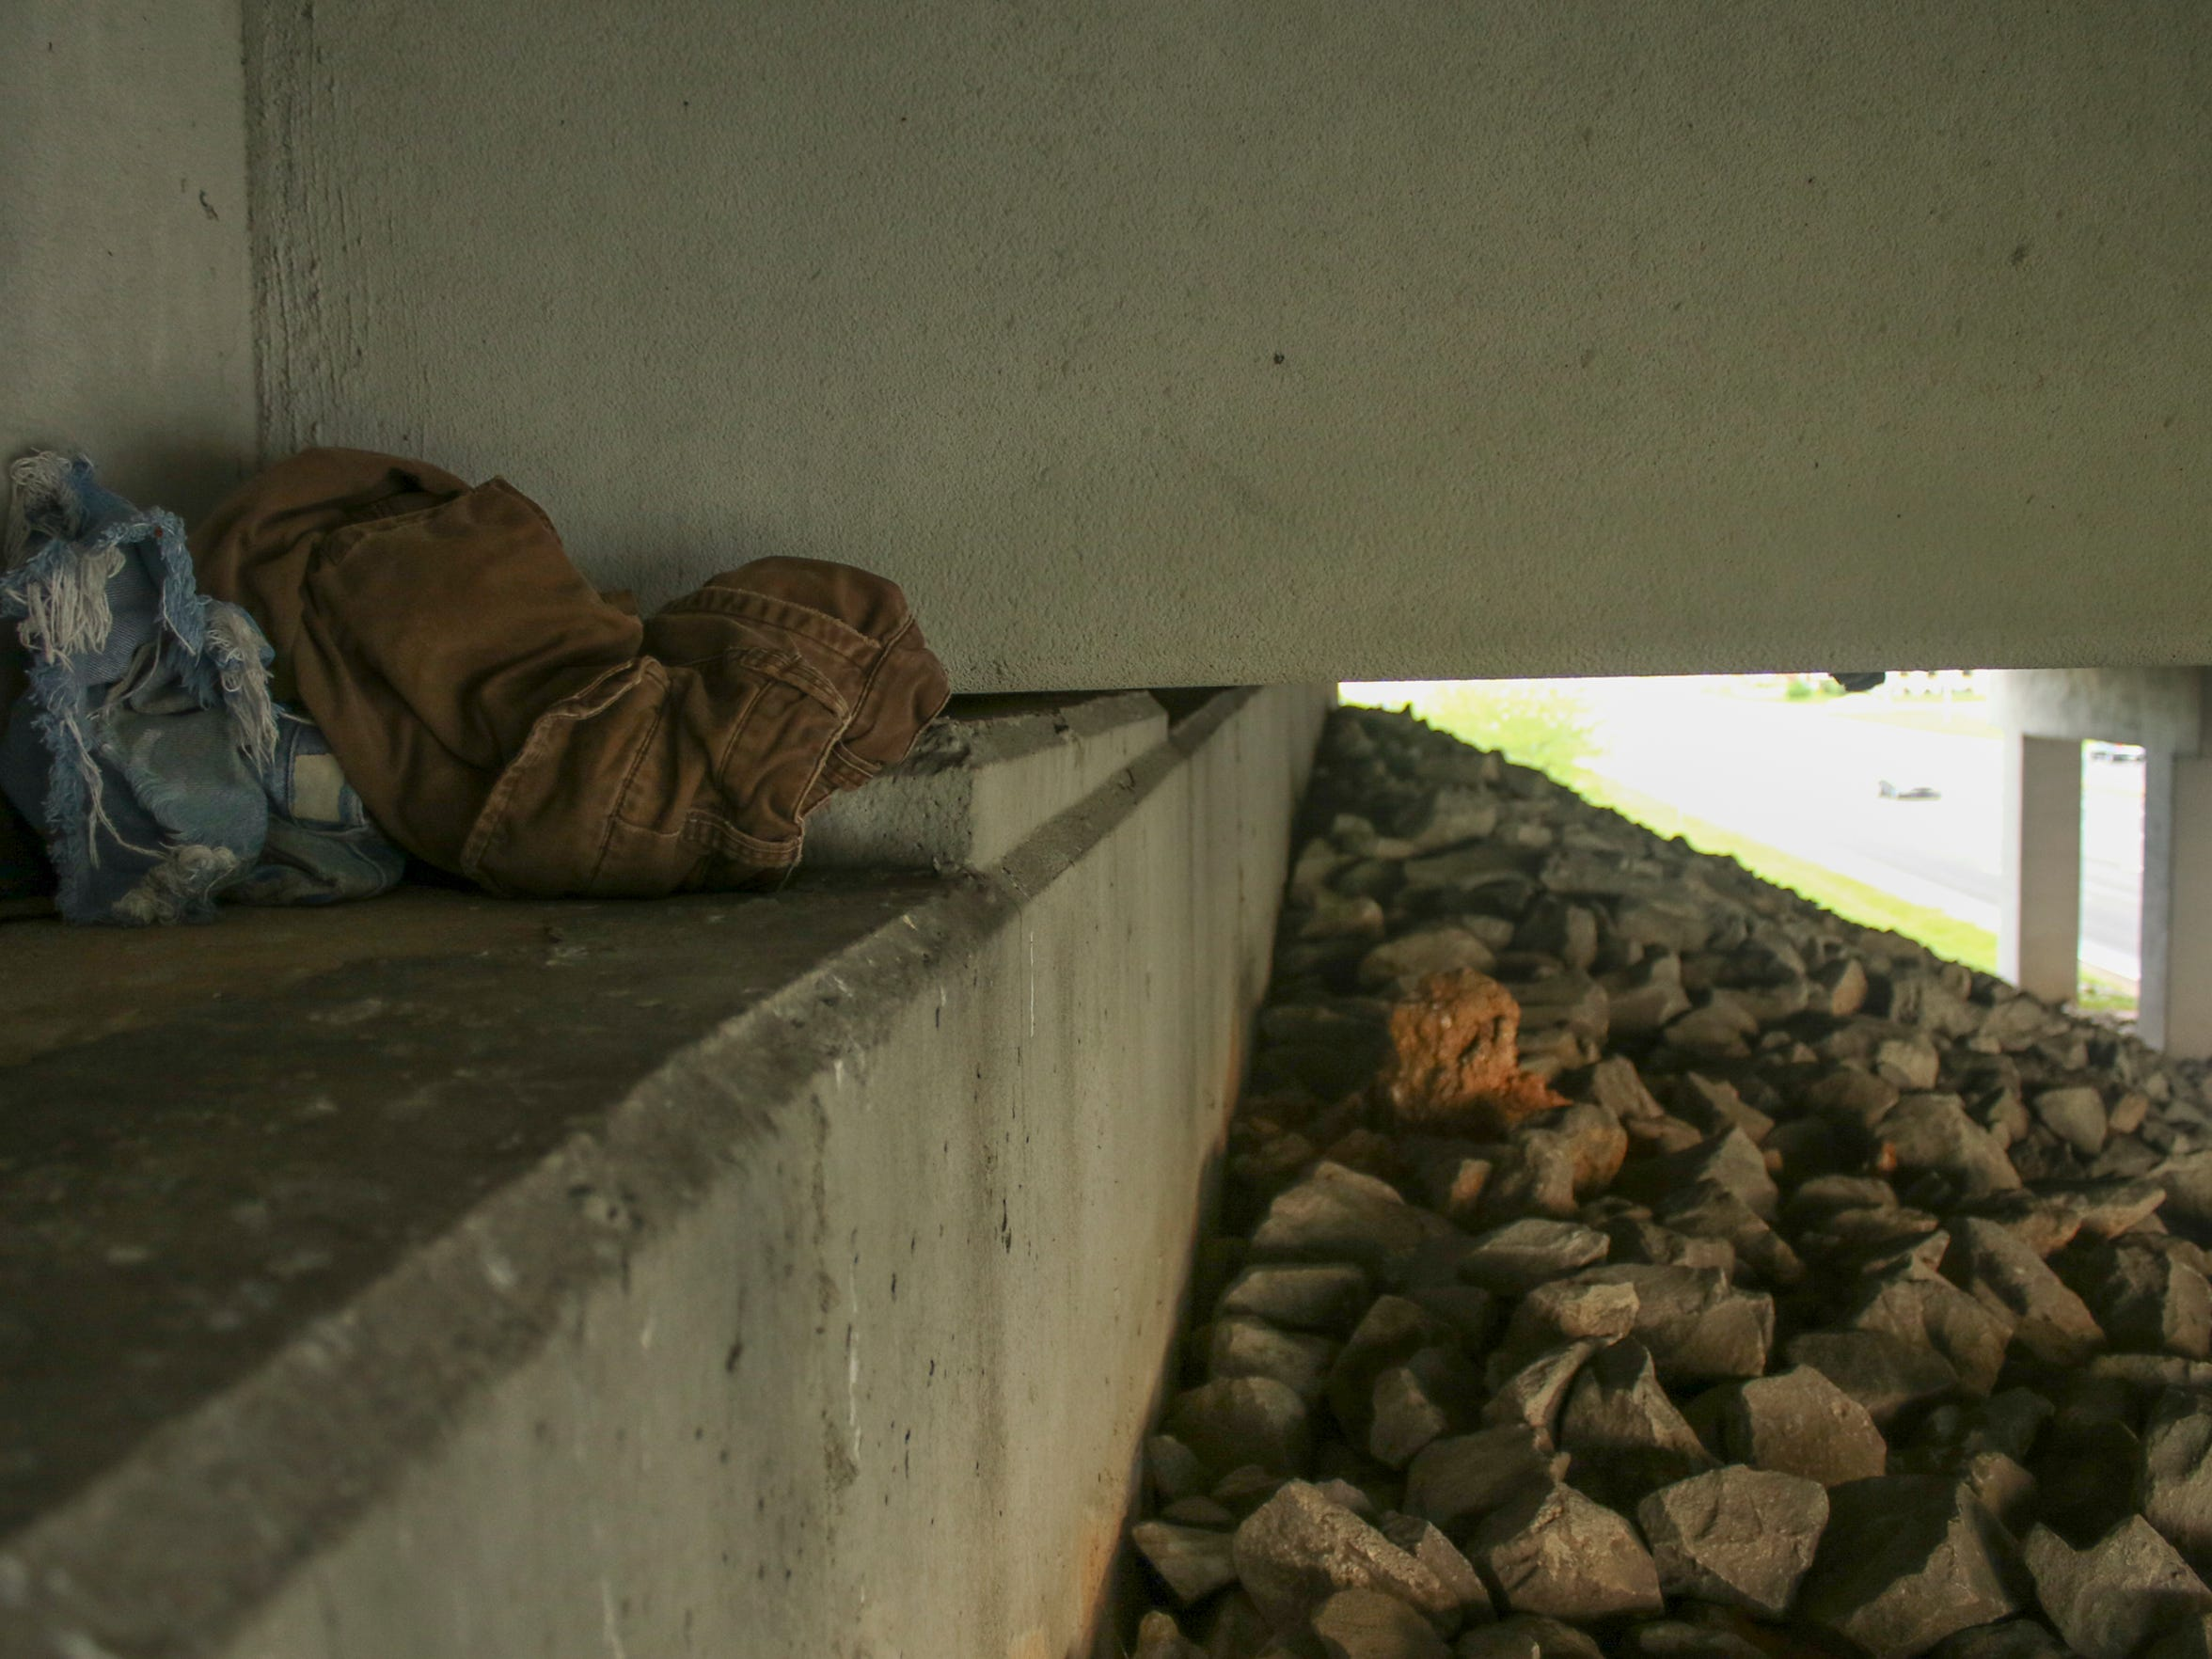 Clothes sit under the 101st Airborn Division Parkway overpass above Fort Campbell Boulevard. This overpass is frequently cited as a spot for the homeless to rest while panhandling.